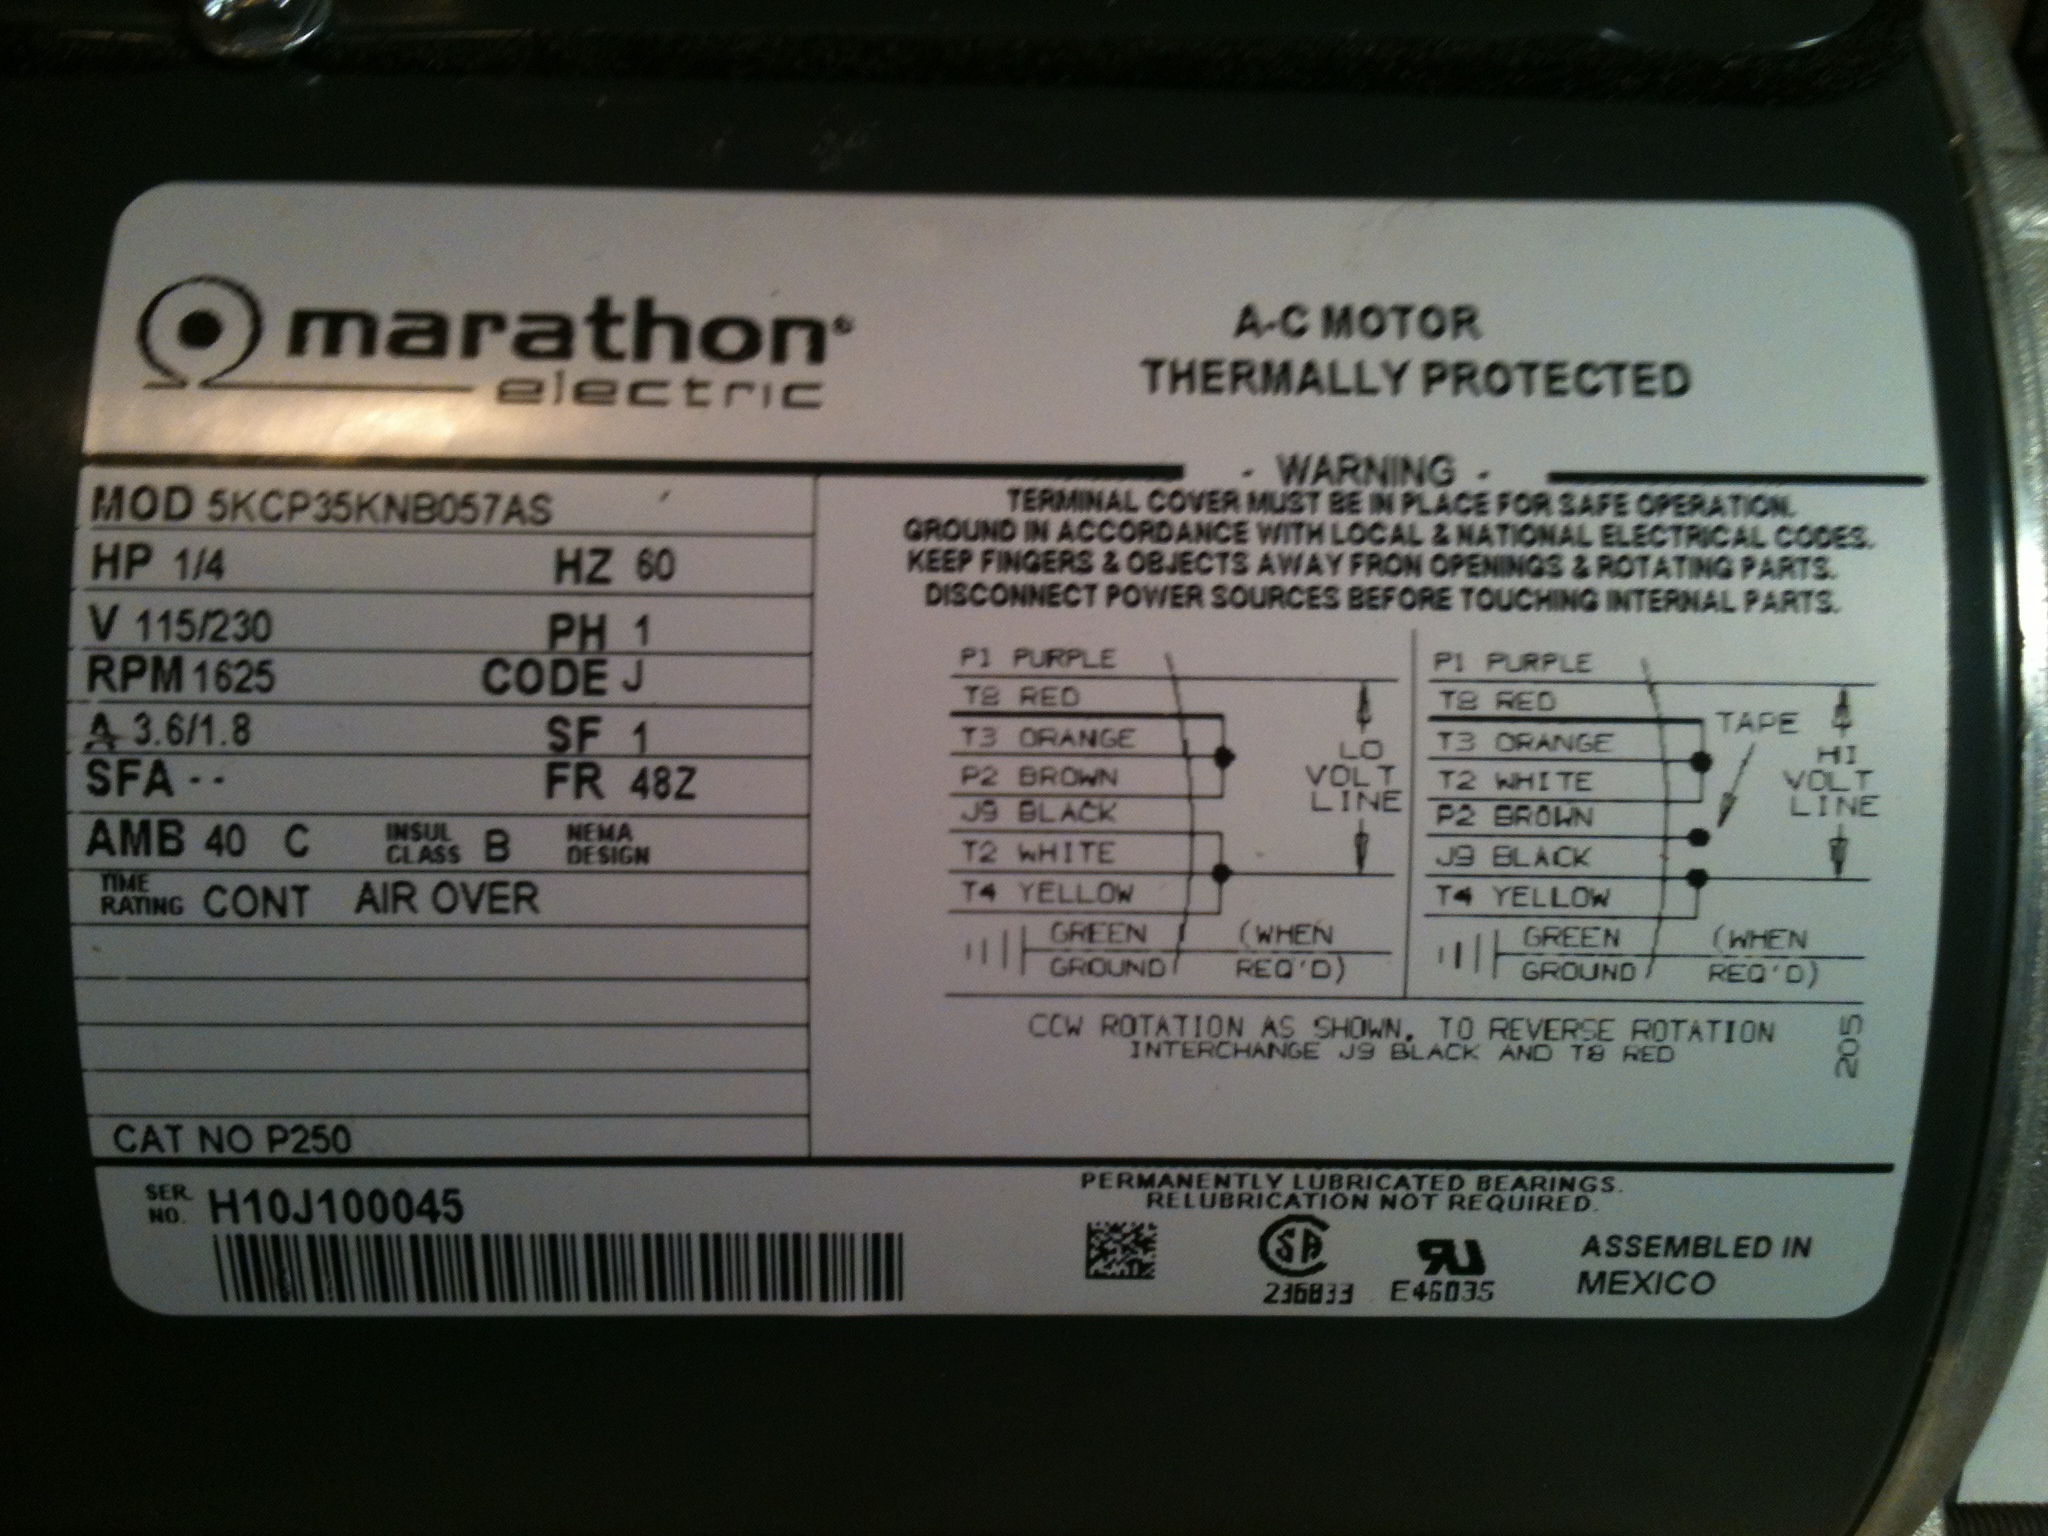 2012 01 24_021217_marathonmotor i just bought a marathon electric ac motor, hp 1 4 v 115 230 220 volt motor wiring diagram at reclaimingppi.co